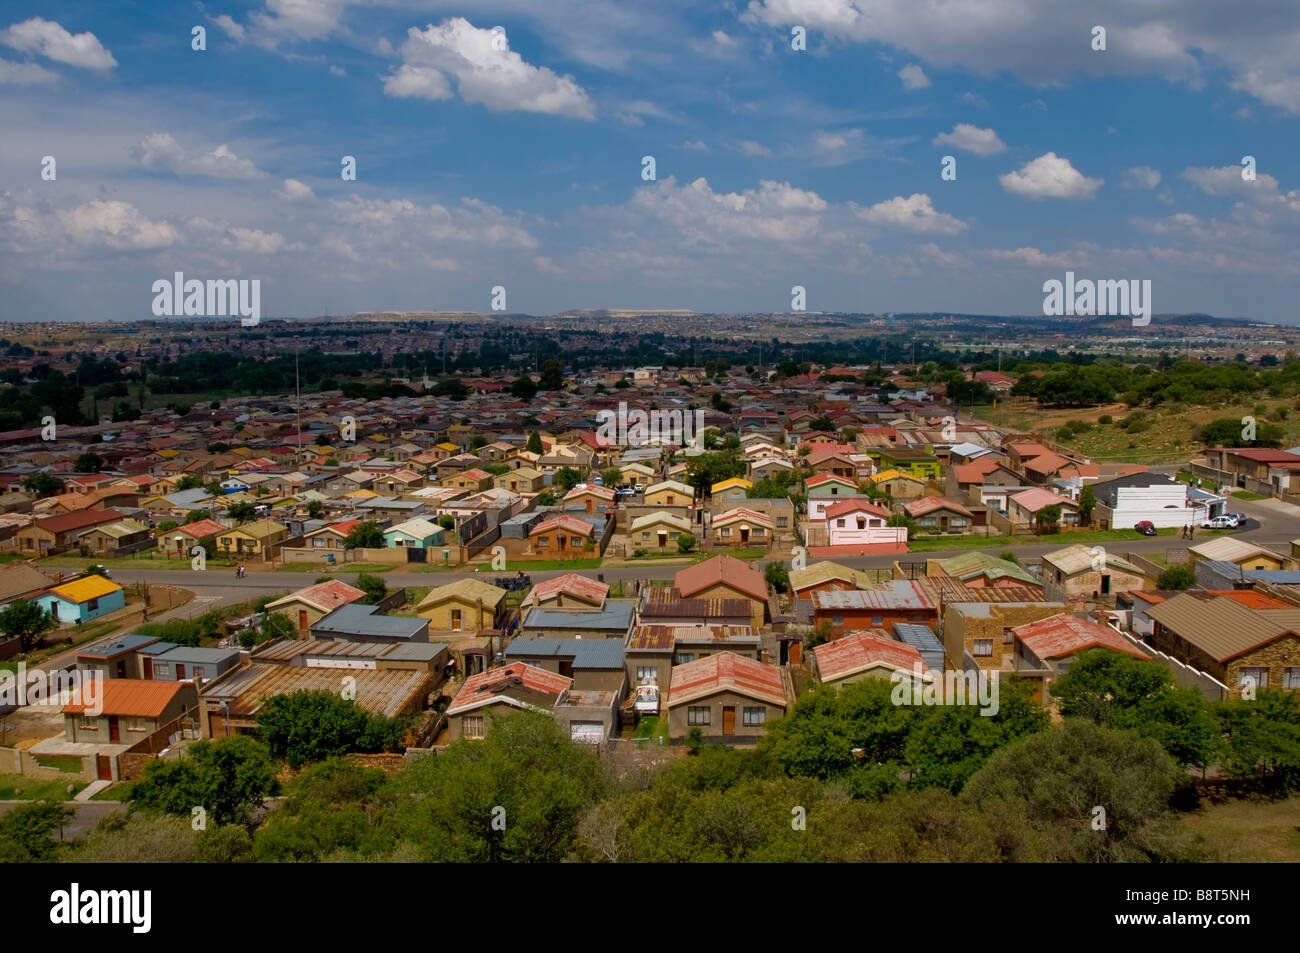 Soweto Johannesburg South Africa - Stock Image